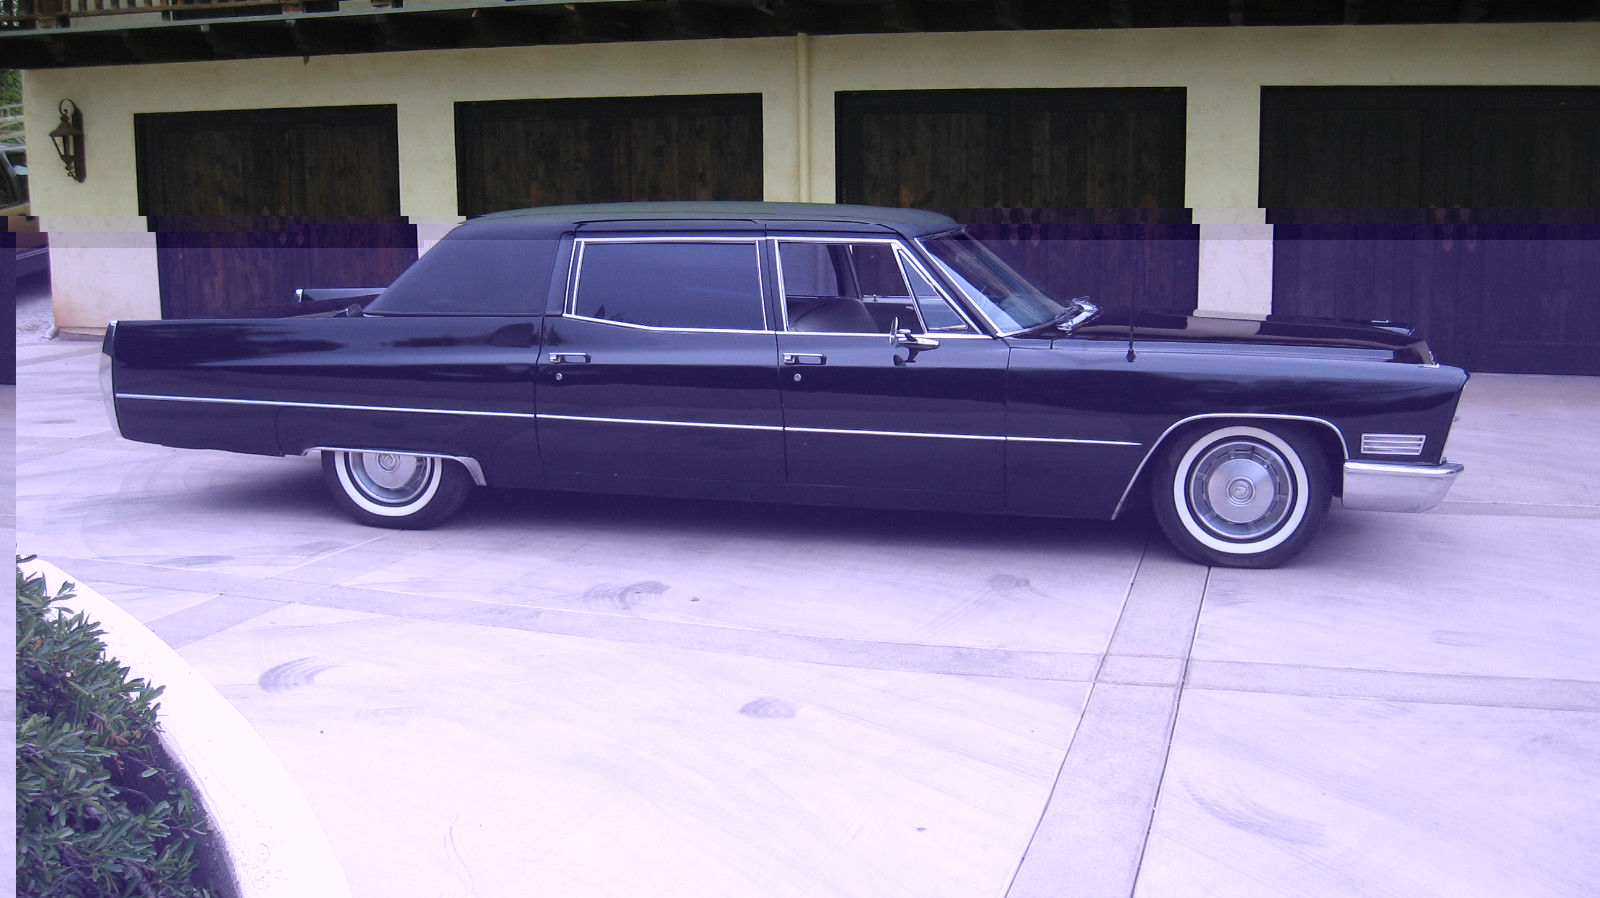 Cadillac Fleetwood Limousine Miles Runs And Drives Great